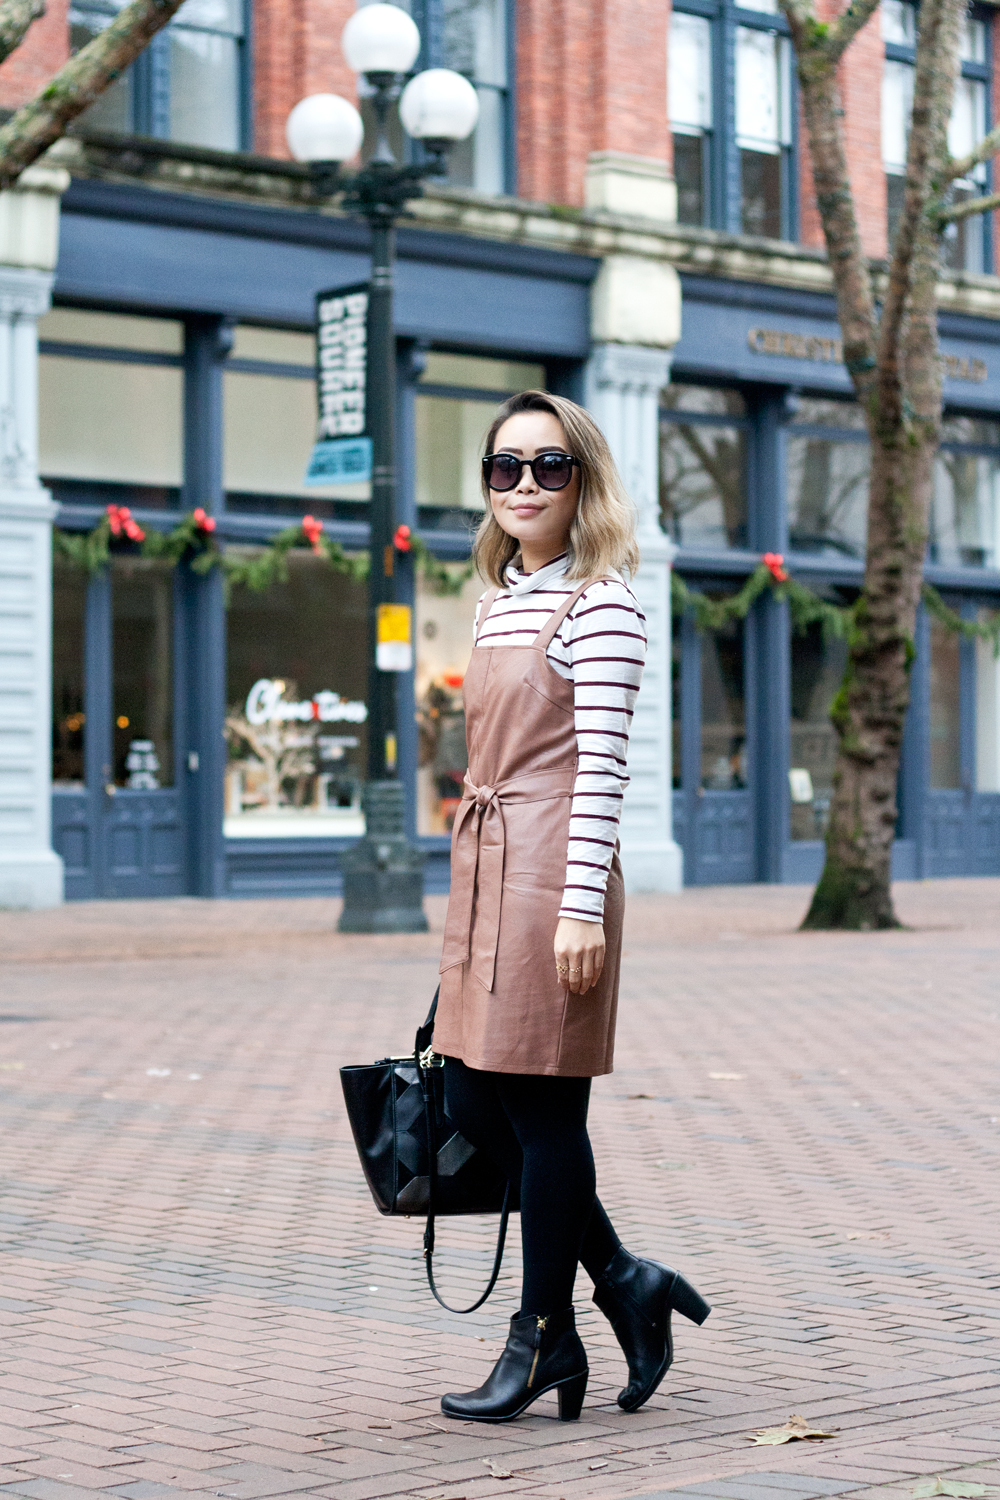 06seattle-pioneersquare-madewell-stripes-leather-pinafore-coach-travel-style-fashion